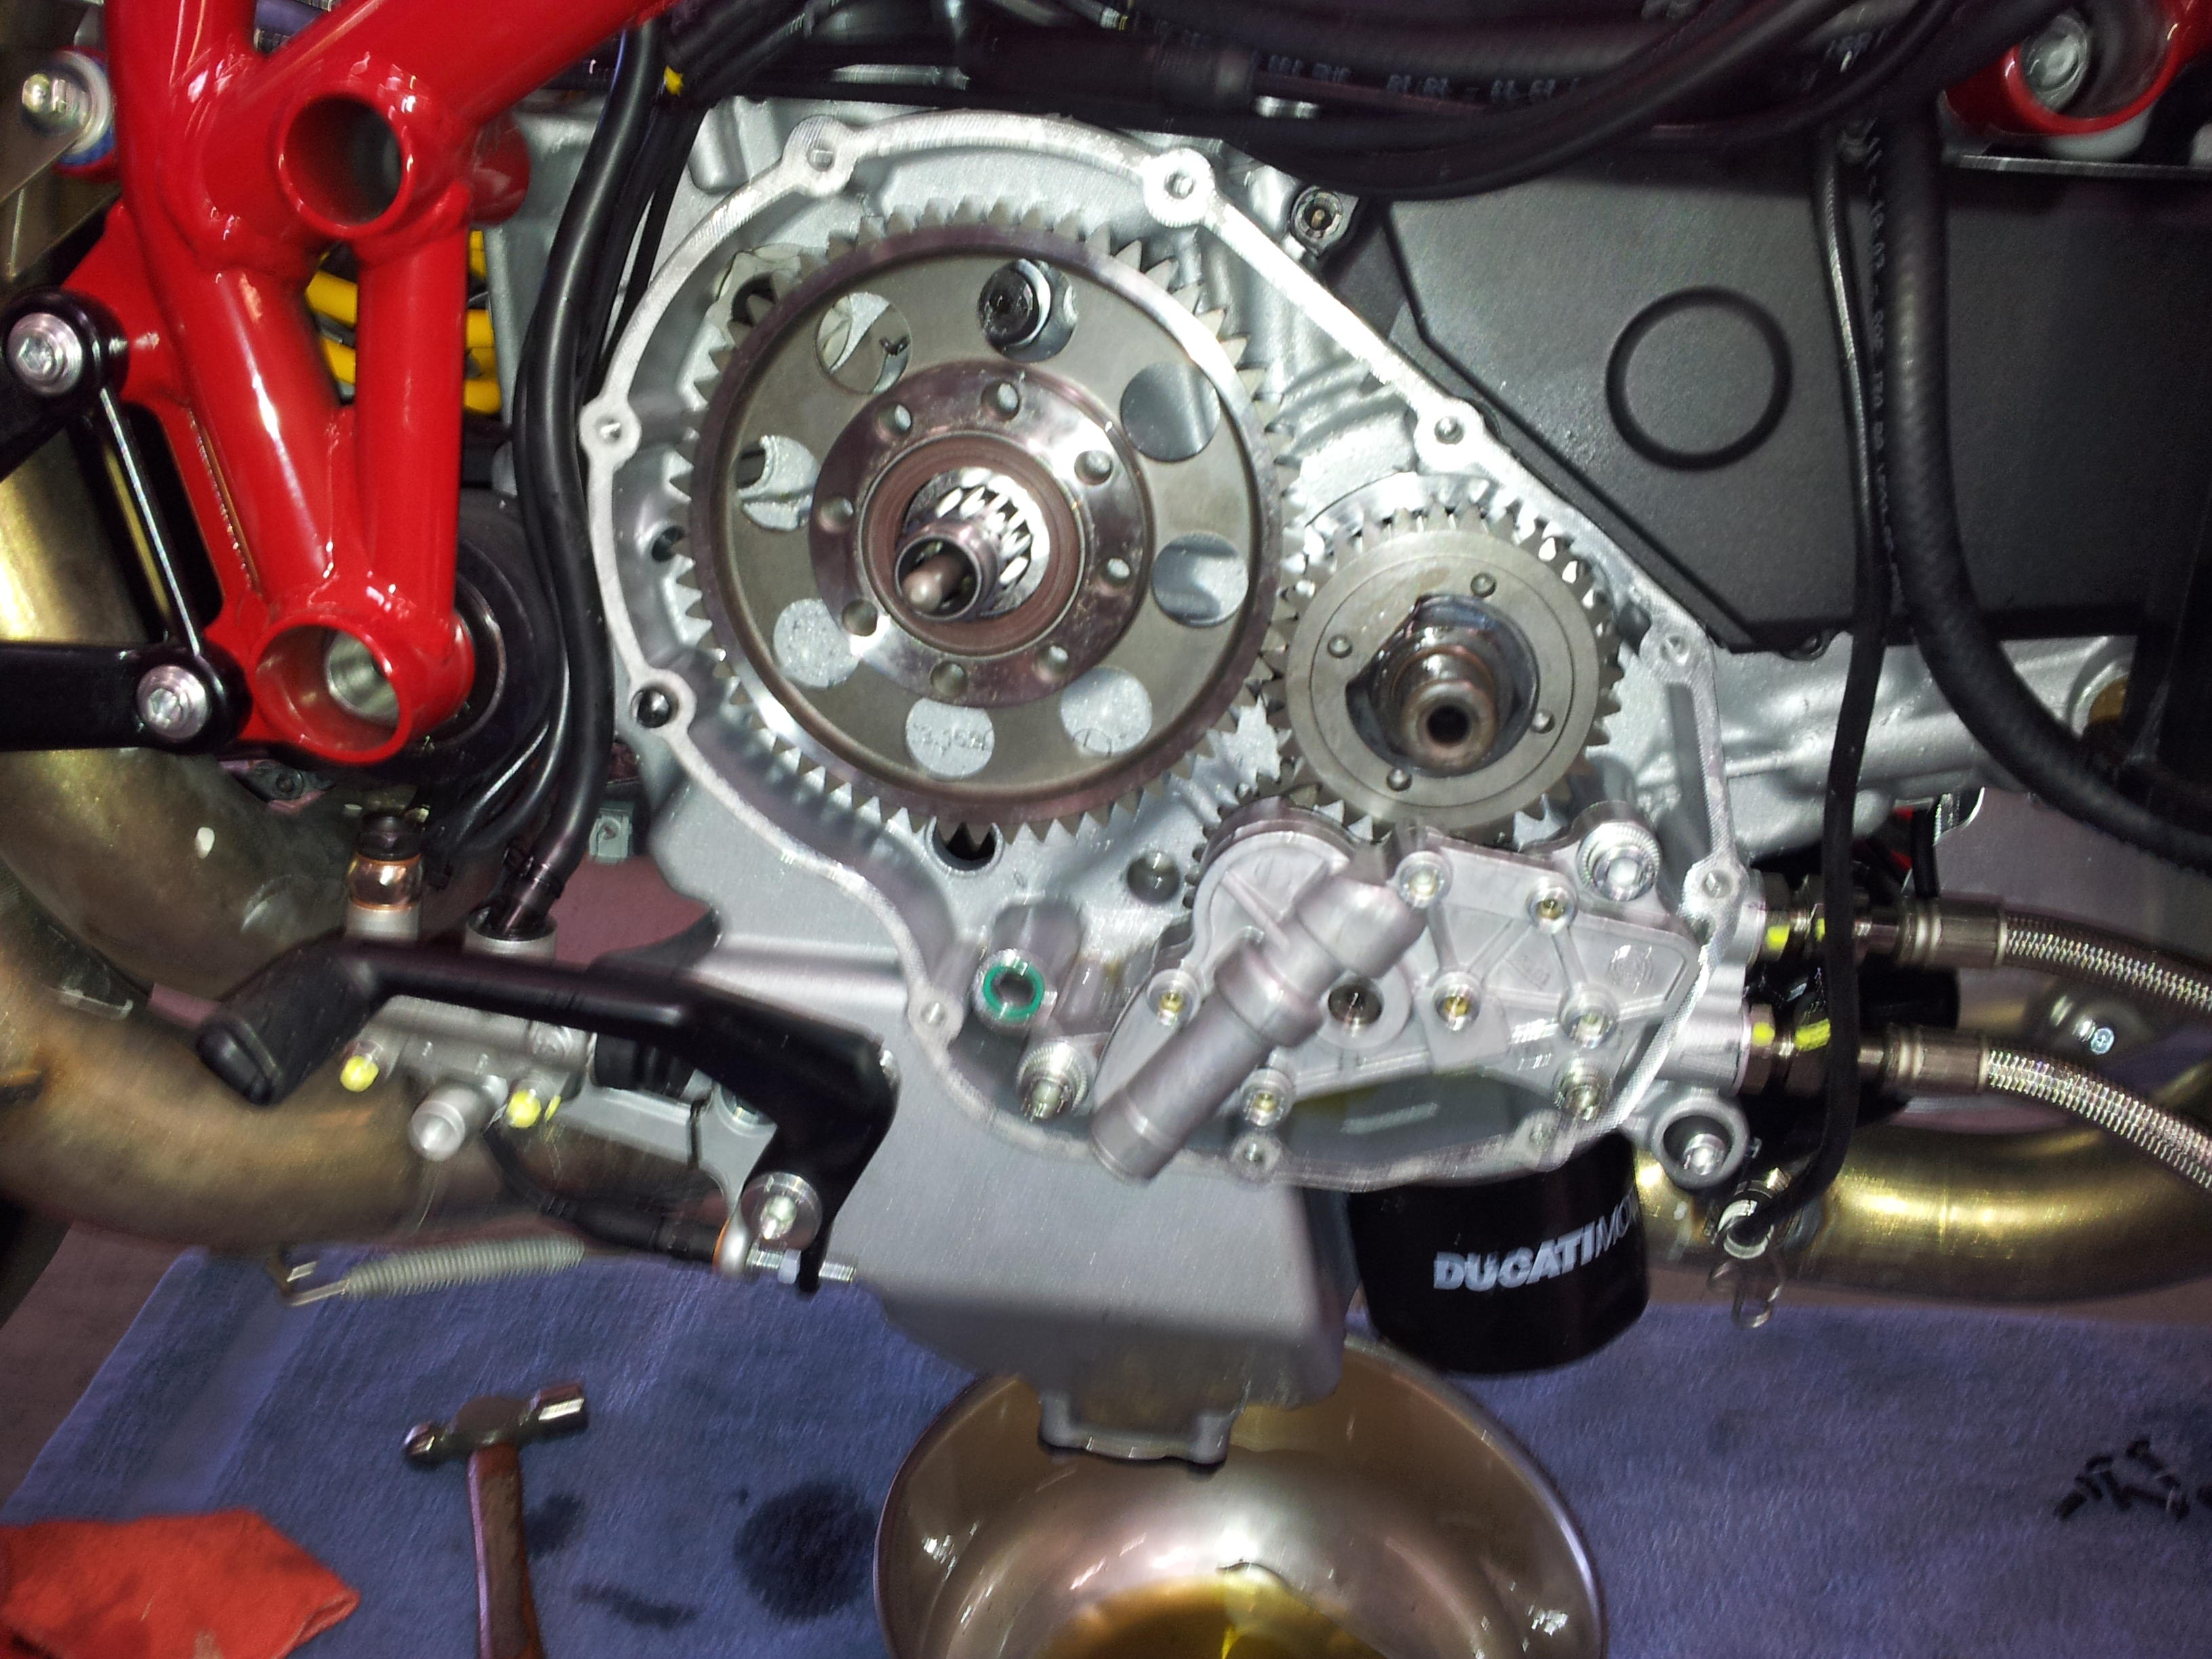 evo corse 848 with dry clutch conversion. - ducati forum